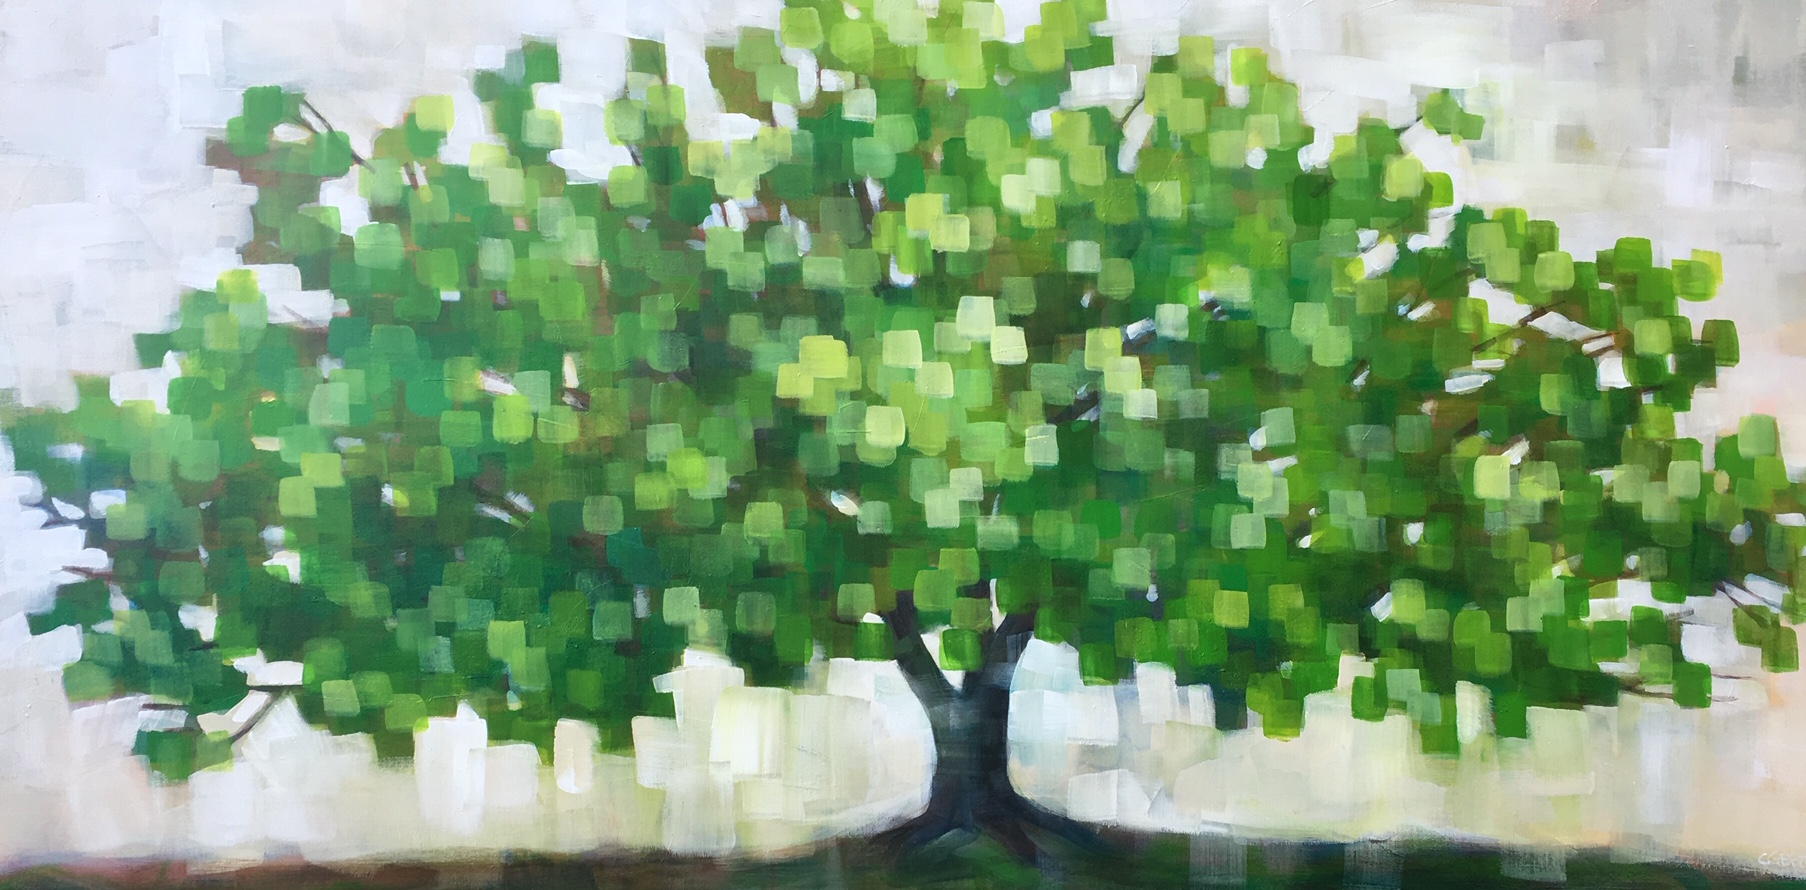 I Dream of Green, acrylic painting by Connie Geerts | Effusion Art Gallery + Cast Glass Studio, Invermere BC